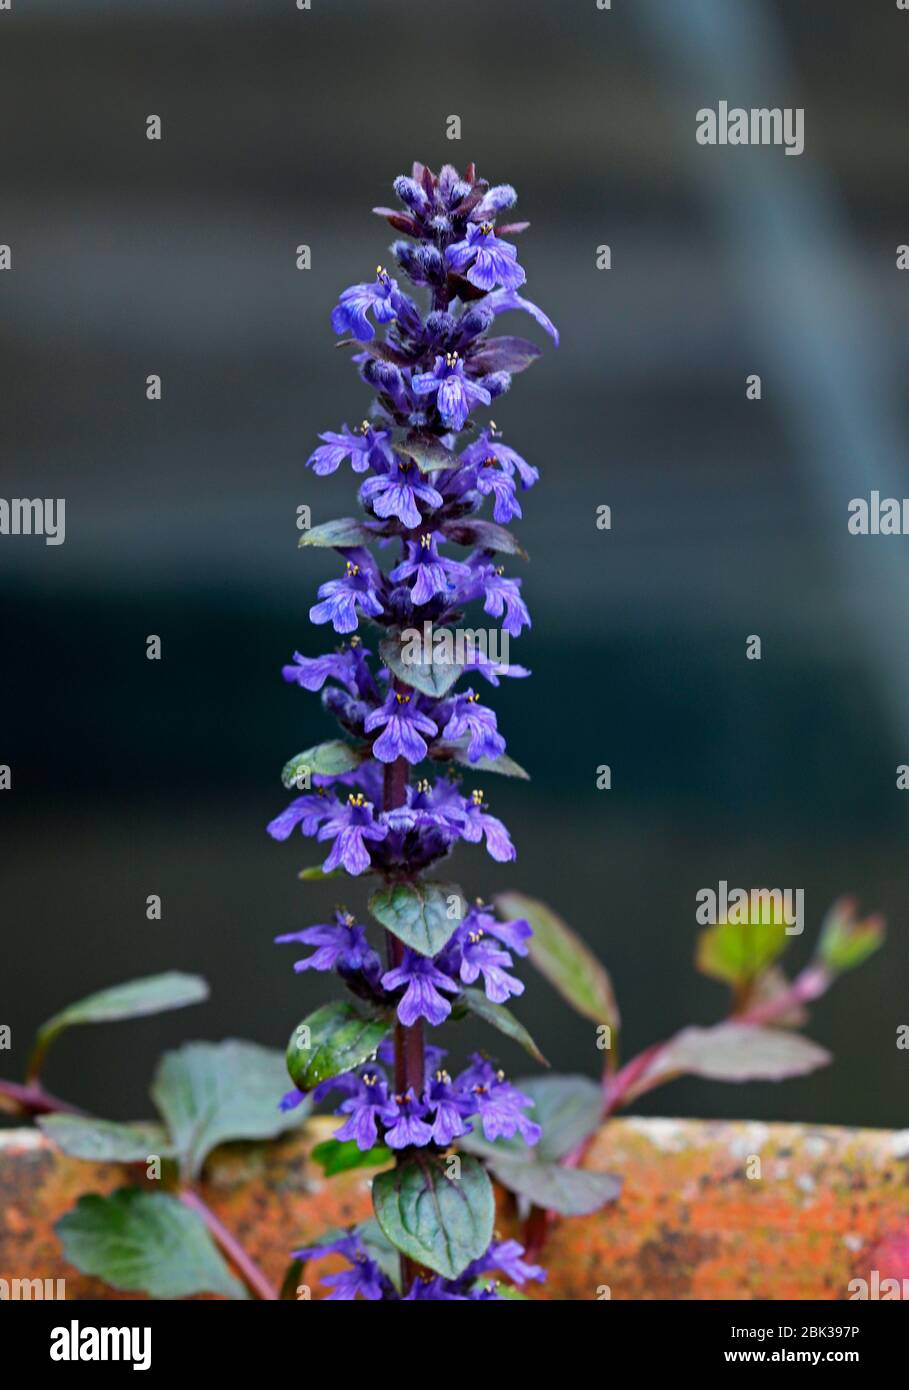 A view of a flowering Bugleherb, Ajuga reptans, cultivated in a pot outdoors in spring on a shady area of an English rock garden. Stock Photo